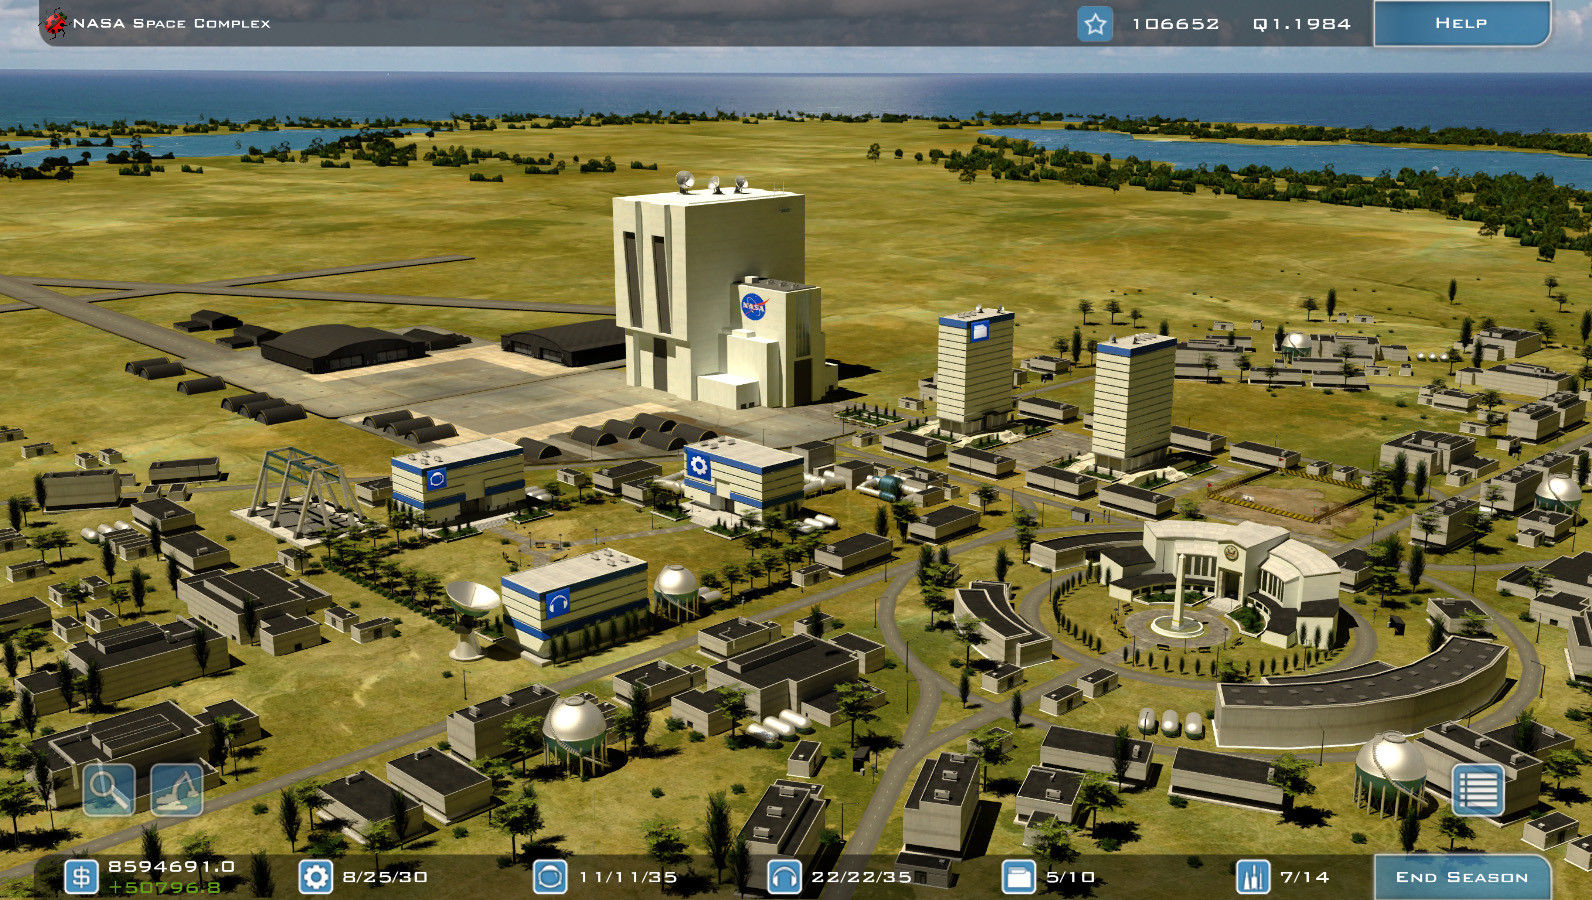 Buzz Aldrin's Space Program Manager: Road to the Moon Go ... on kerbal delta v map, h1z1 road map, kerbal space forum map, example of delta on map, ksp mun map, ksp delta-v map, ksp kerbin map, planetside 2 road map,